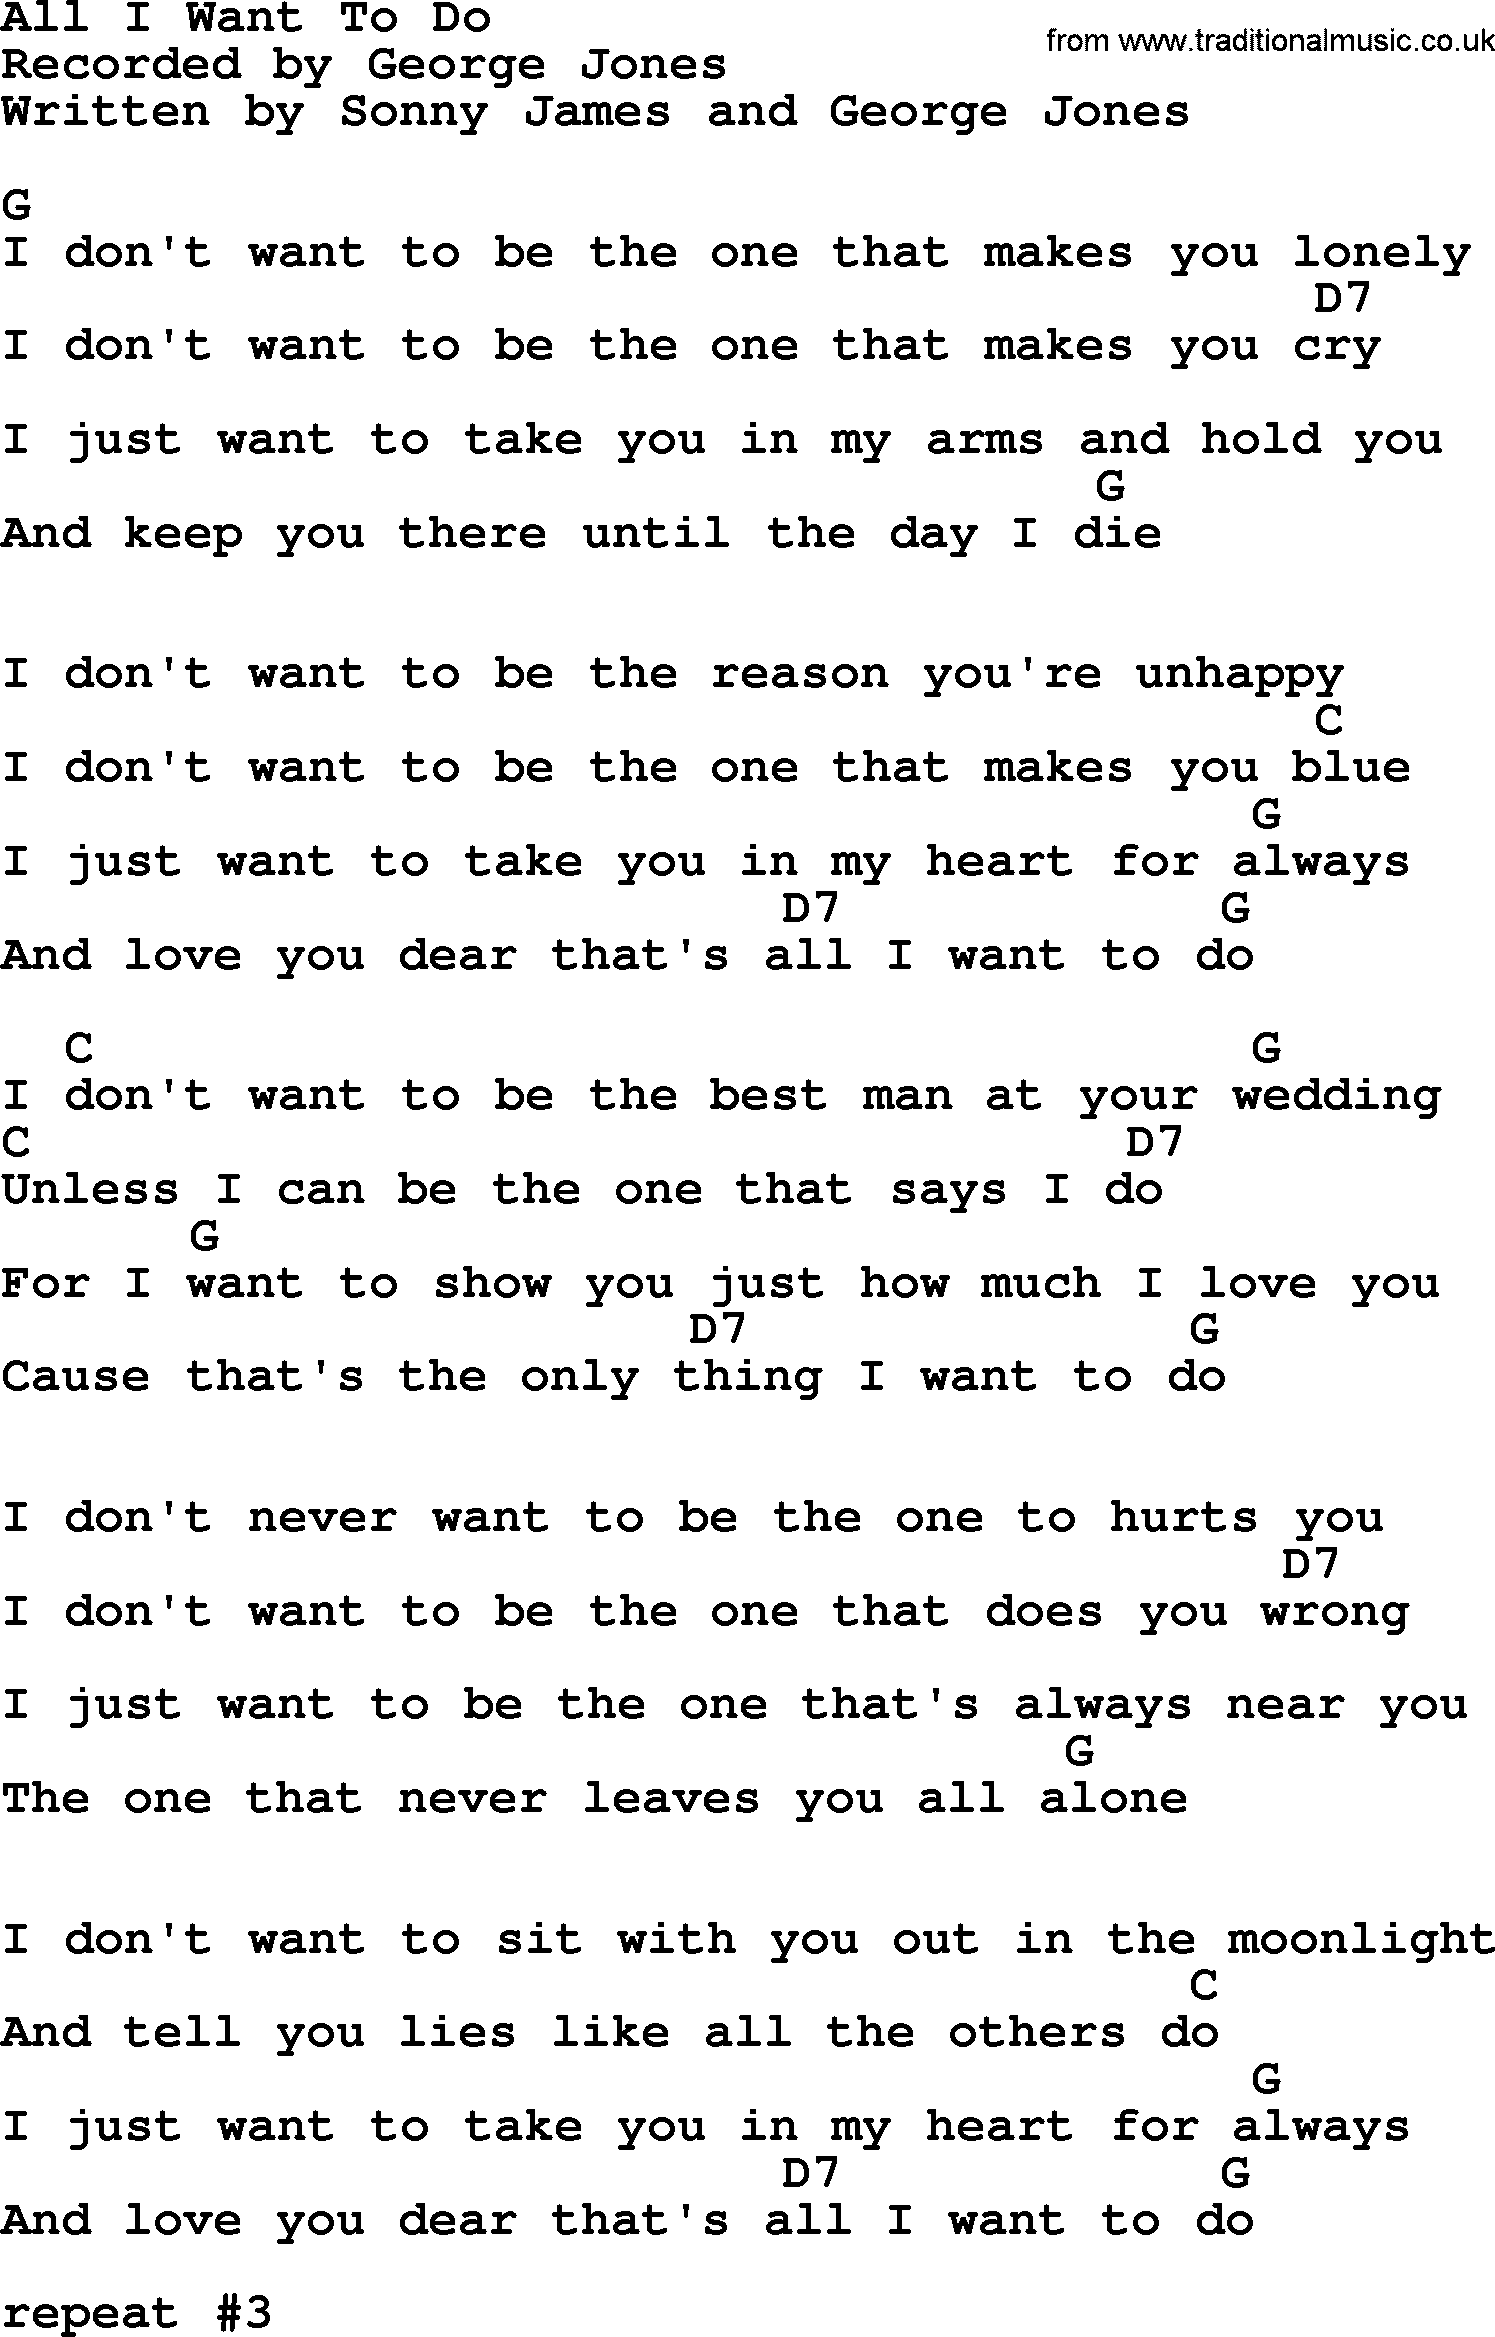 UB40 - ALL I WANT TO DO LYRICS - SongLyrics.com